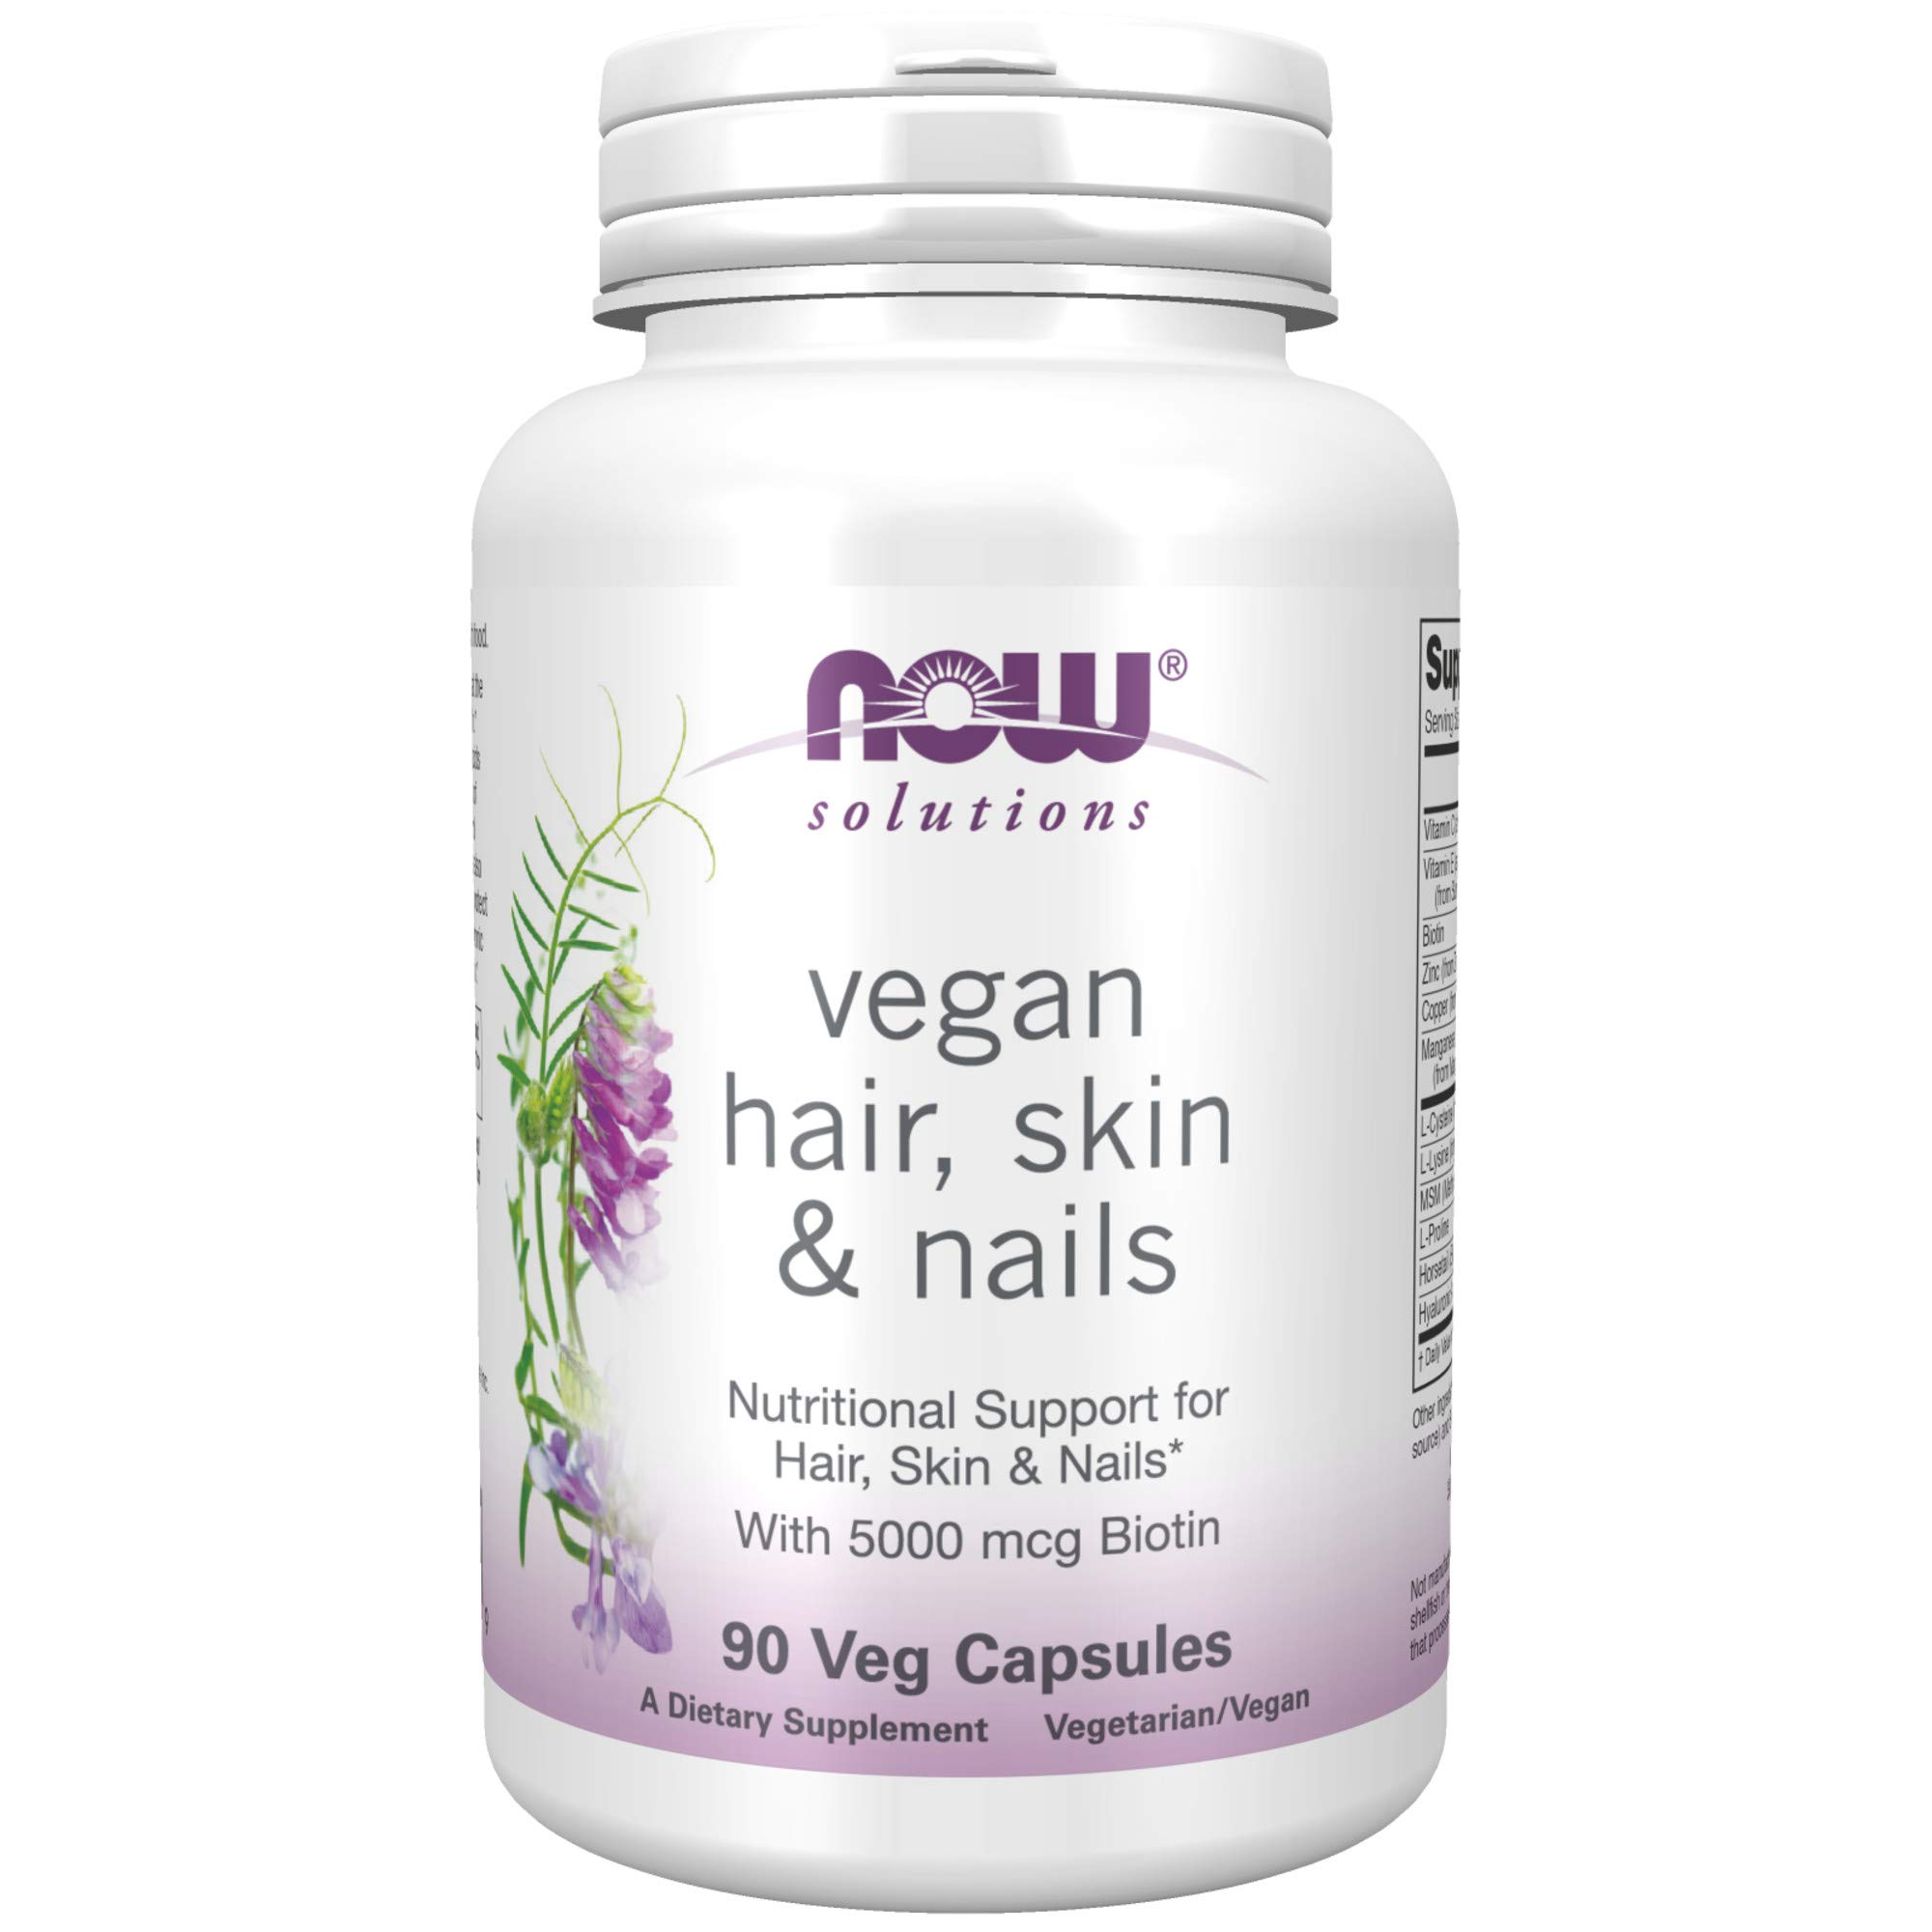 NOW Solutions, Vegan Hair, Skin & Nails, Nutritional Support with 5,000 mcg Biotin, 90 Veg Capsules